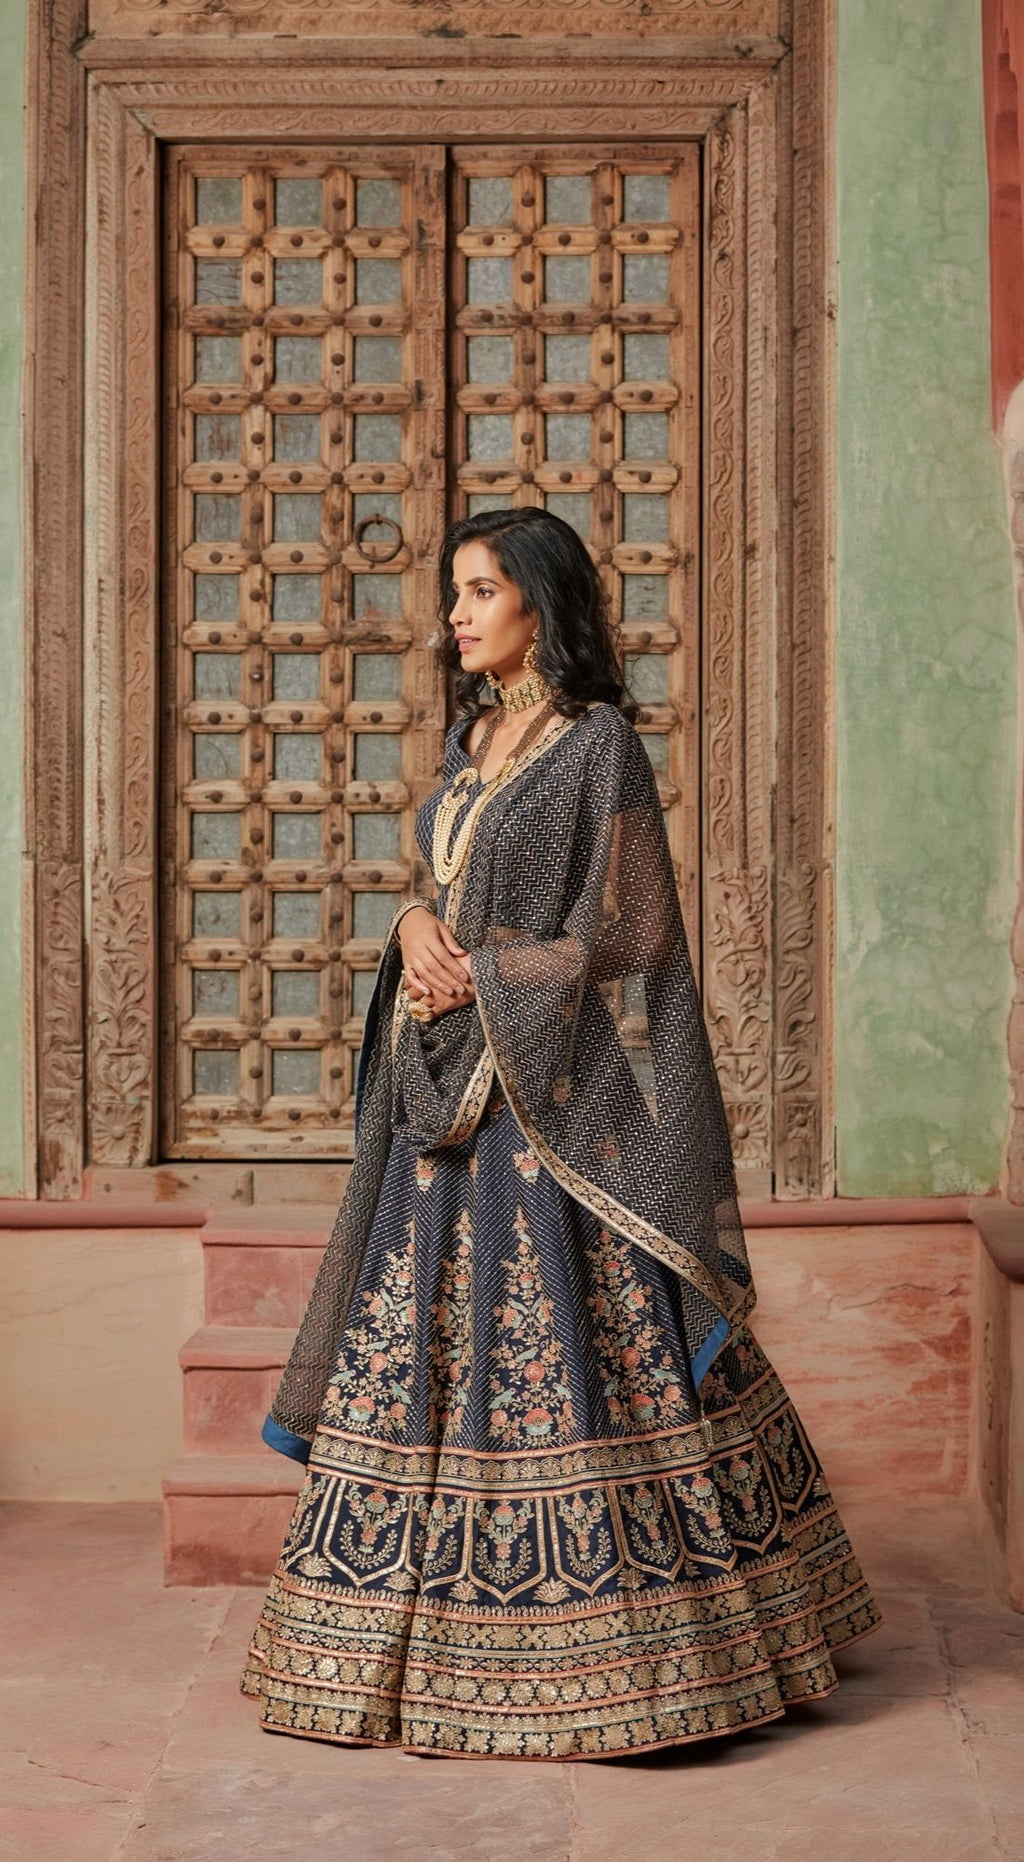 Sequins Embellished Net Charcoal Lehenga Set